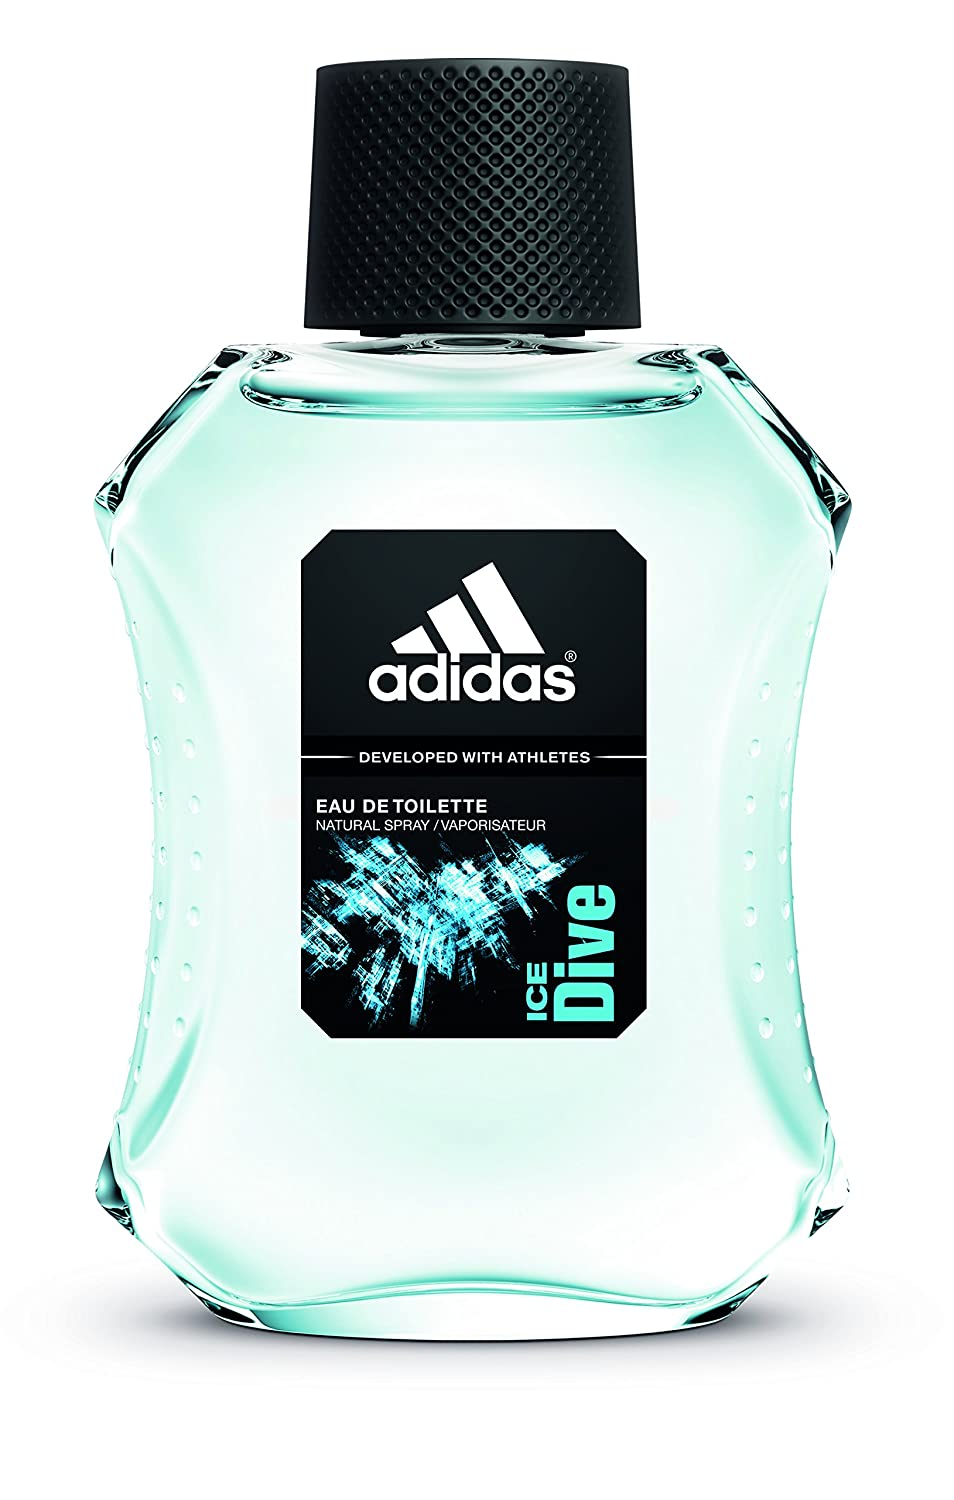 Adidas Ice Dive Body Spray, Shower Gel and Eau De Toilette Trio, 50 ml Coty 31650246000